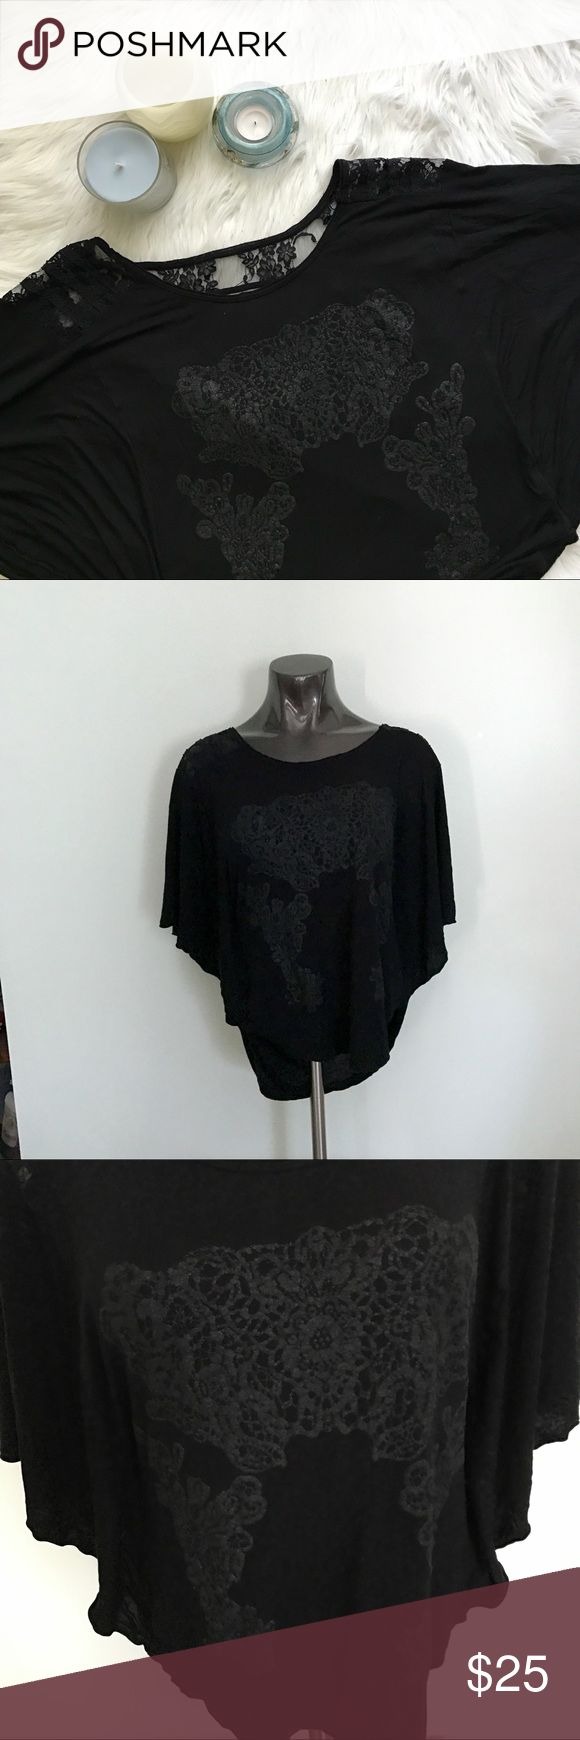 {FREE PEOPLE} Black Batwing Top 🦇 This flowy and fun Top is black with black graphics on the front. Cute Lace band in the back to keep the shirt from falling down. Draped back. Dolman/batwing sleeves. No noticeable flaws. Size small. Free People Tops Tees - Short Sleeve